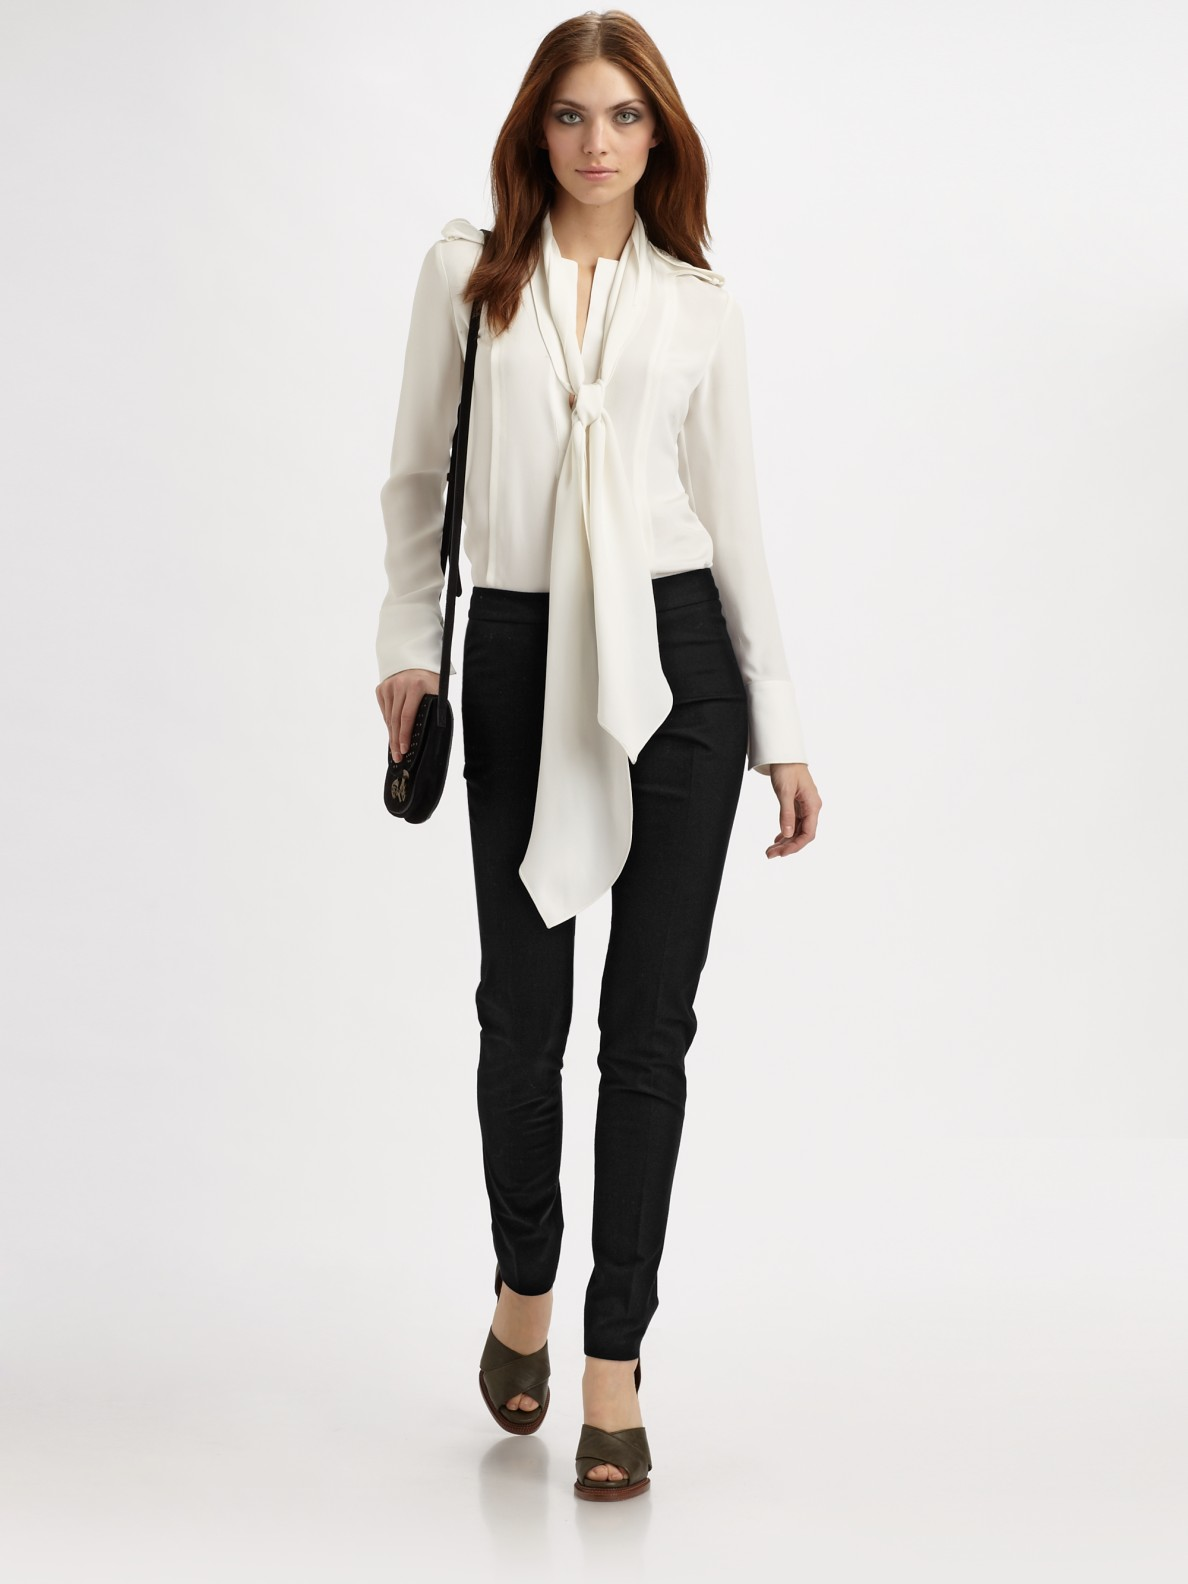 Scarf And White Blouse - Henley Blouse